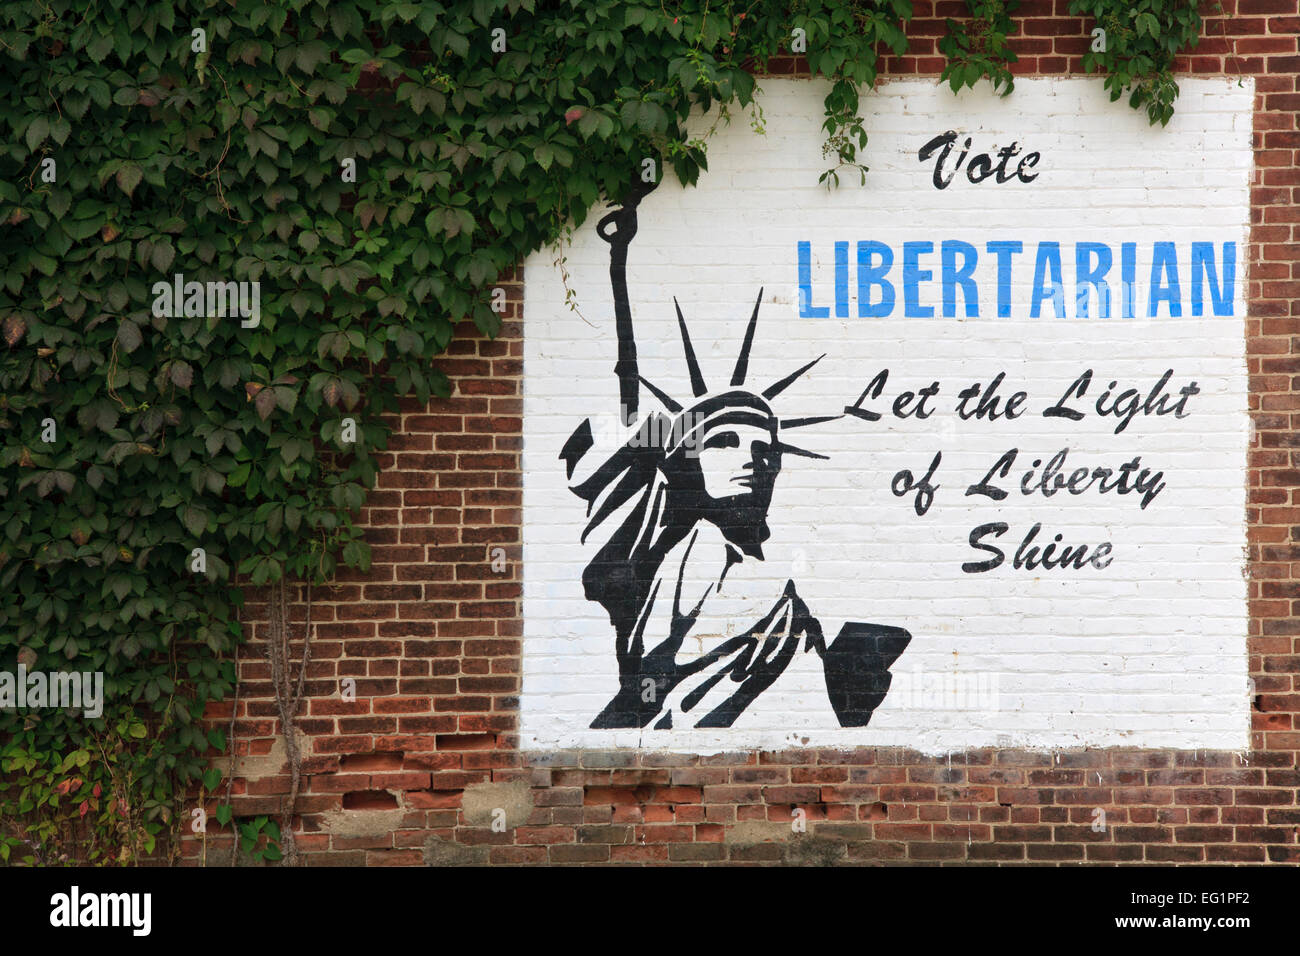 Sign promoting the LIbertarian political party in the United States. - Stock Image